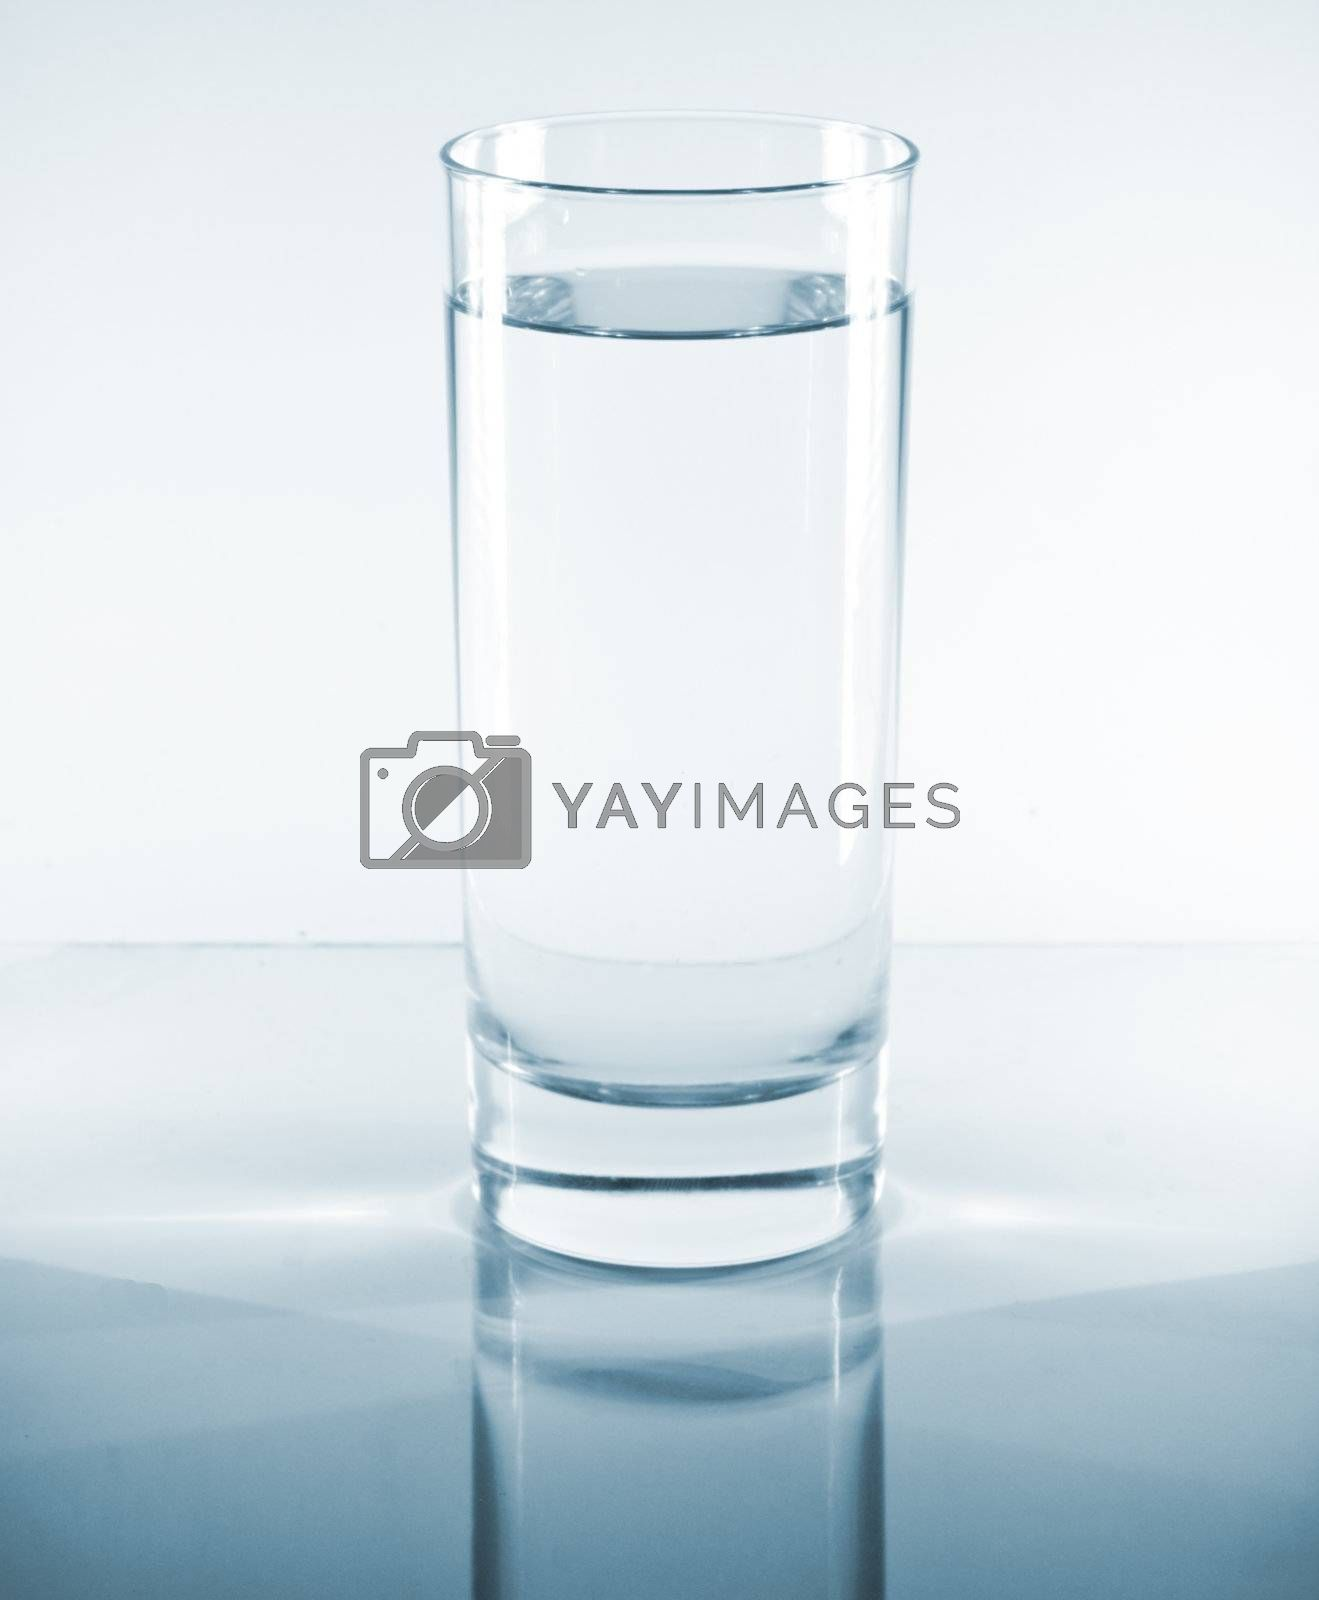 Glass of water on a reflective table top